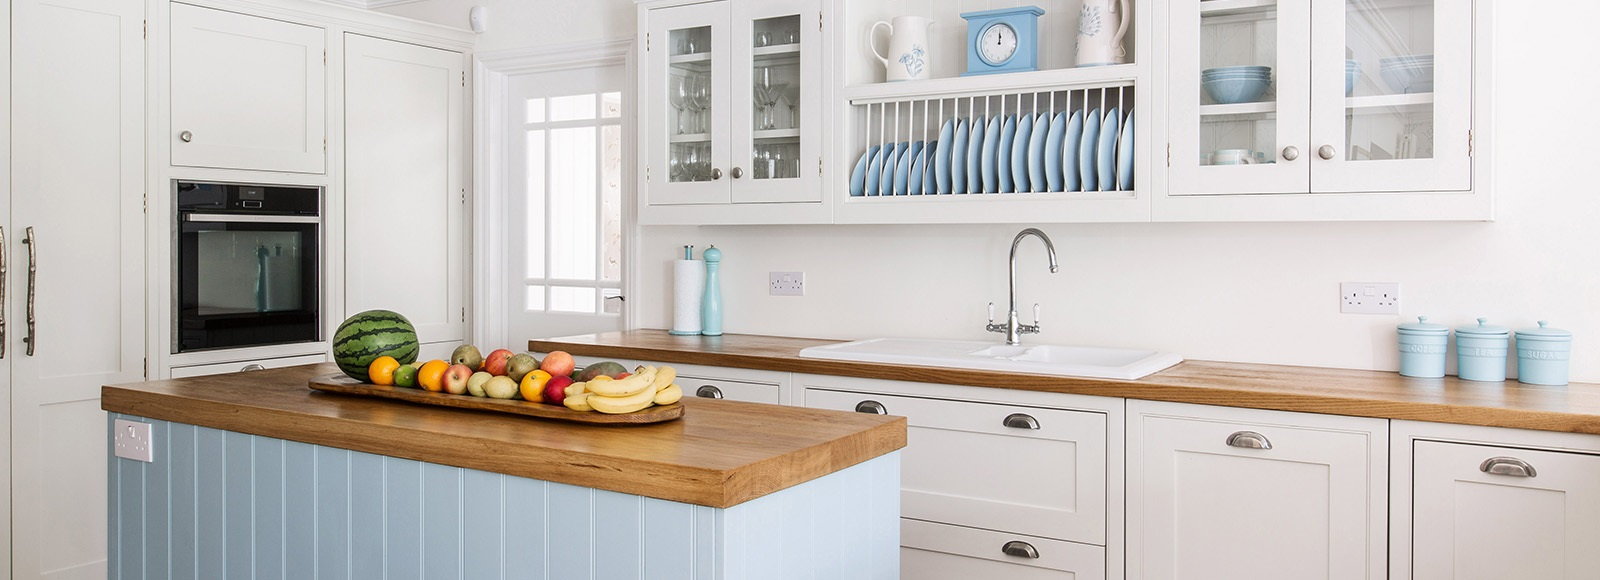 Bespoke Coastal Shaker Kitchen - Burlanes bespoke handmade Wellsdown kitchen, handpainted in white and blue, with central island and shaker panelling.